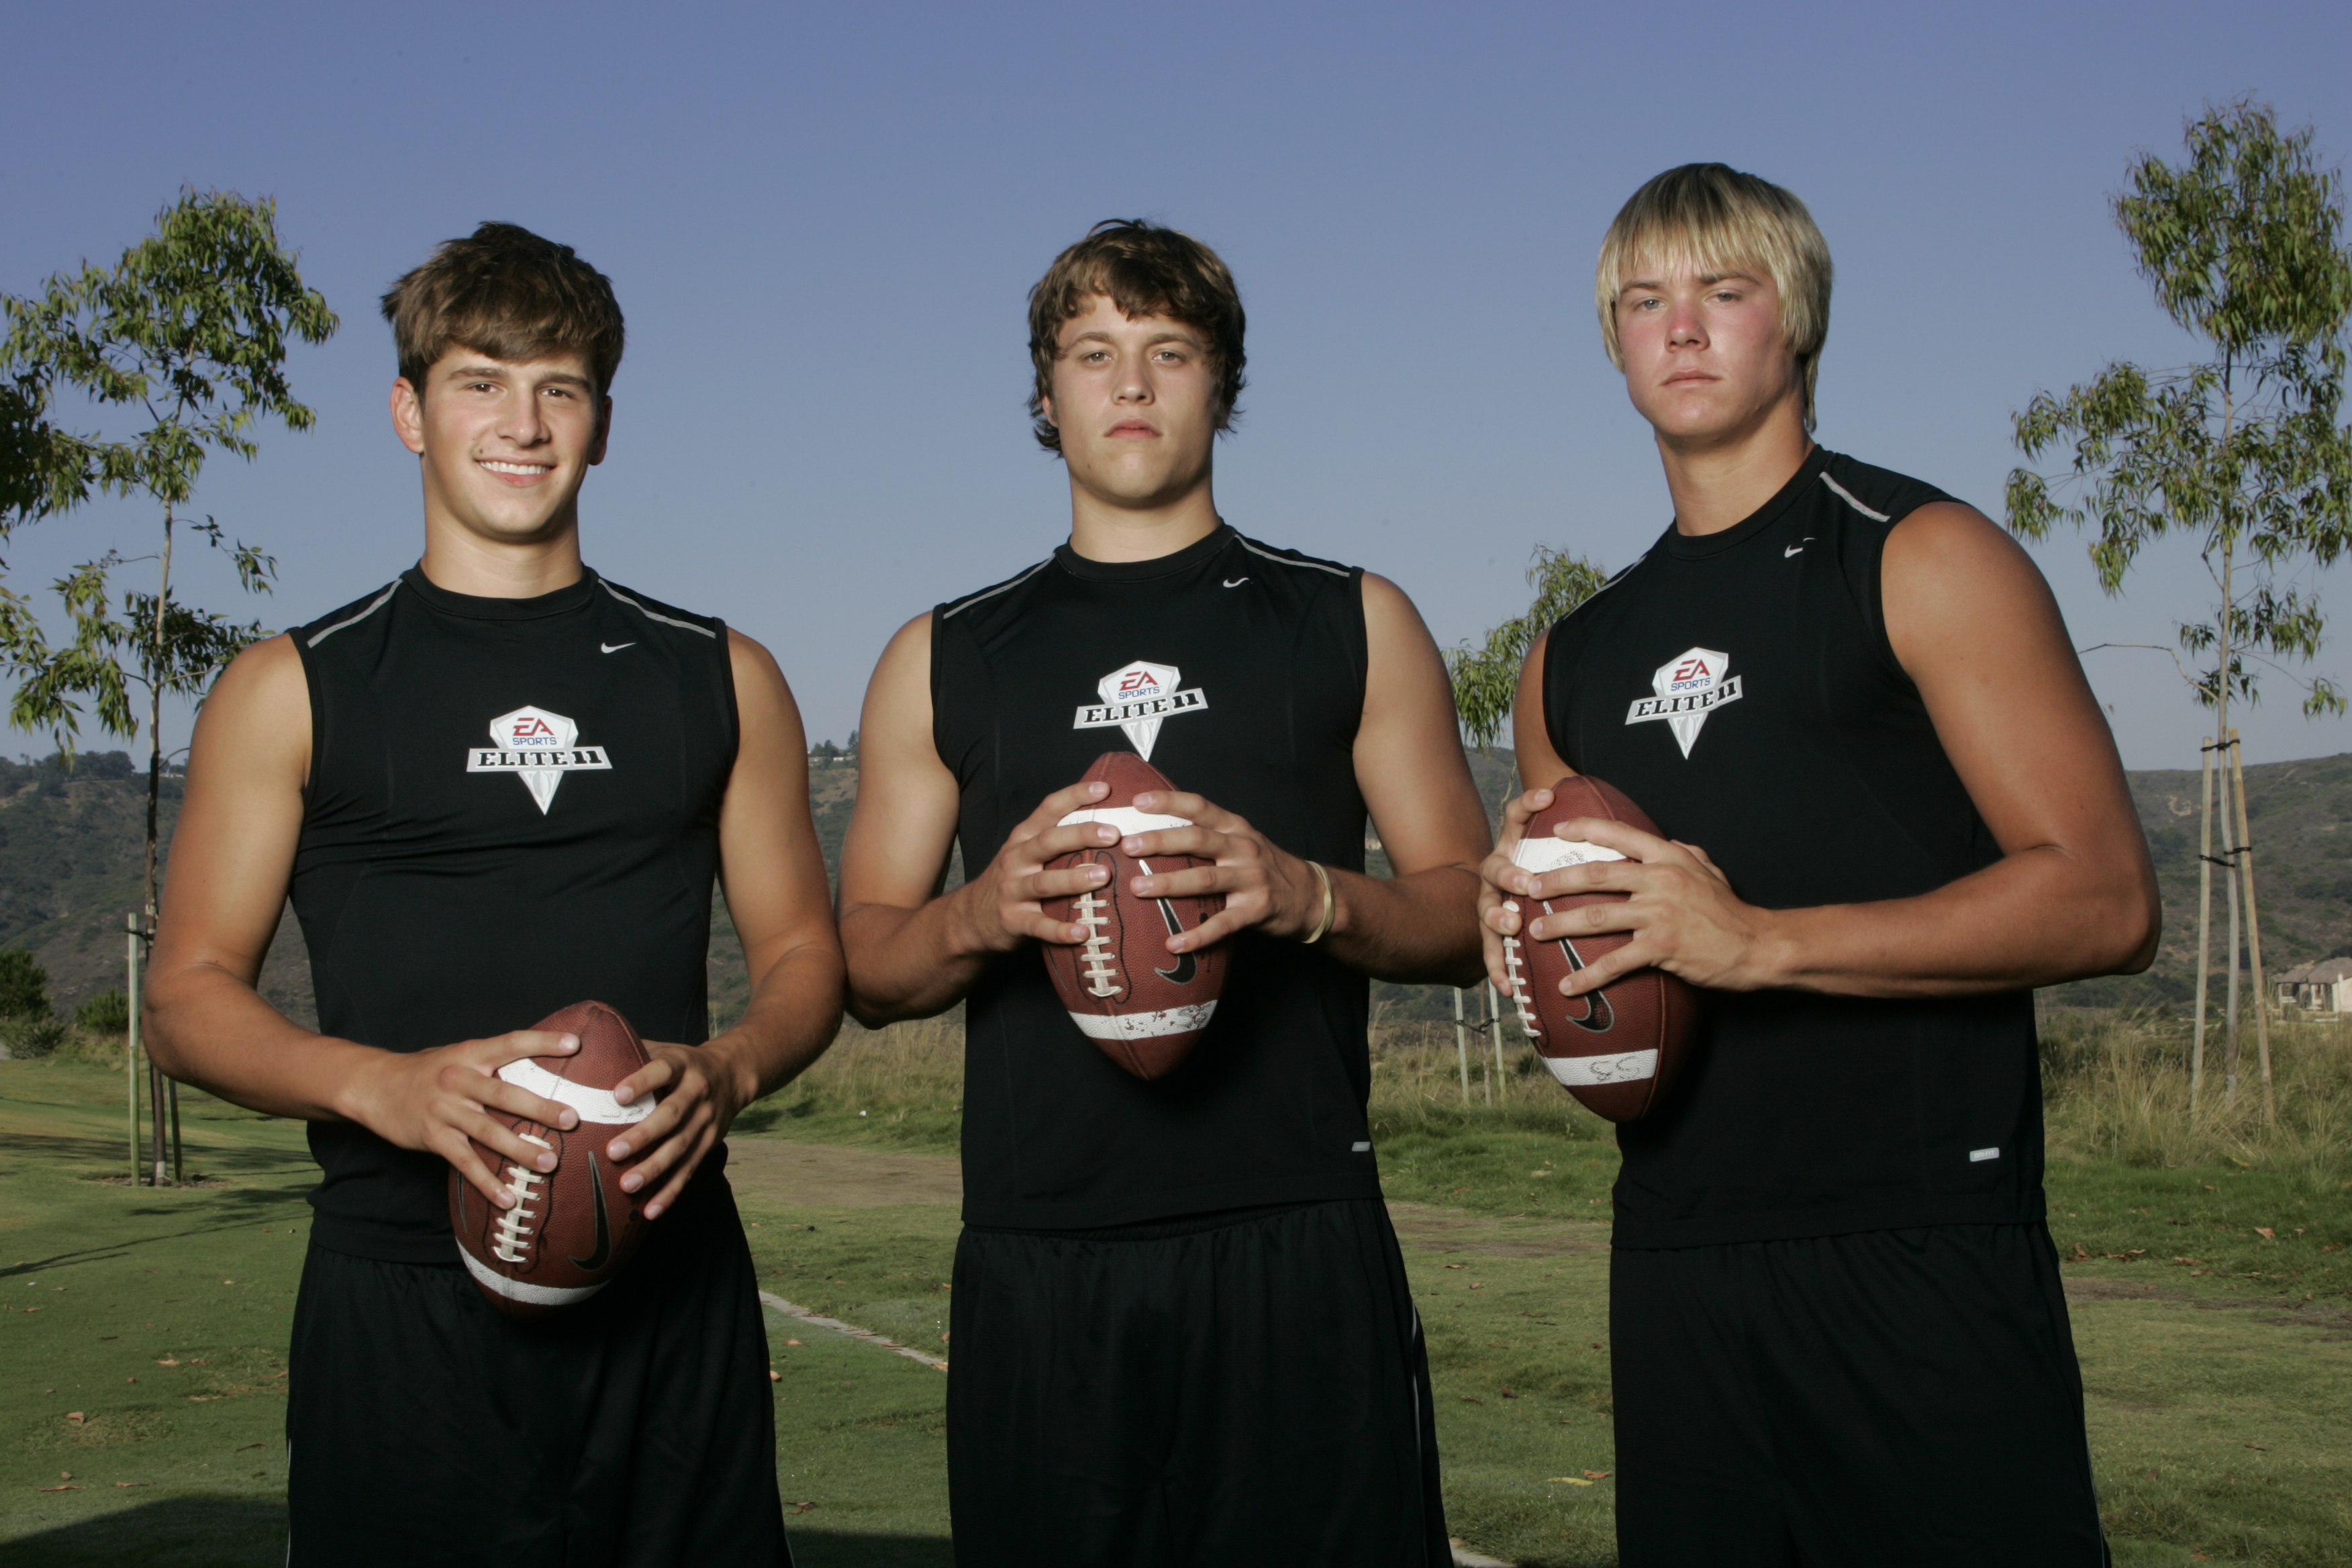 Elite 11 QBs Caudle, Stafford, Snead